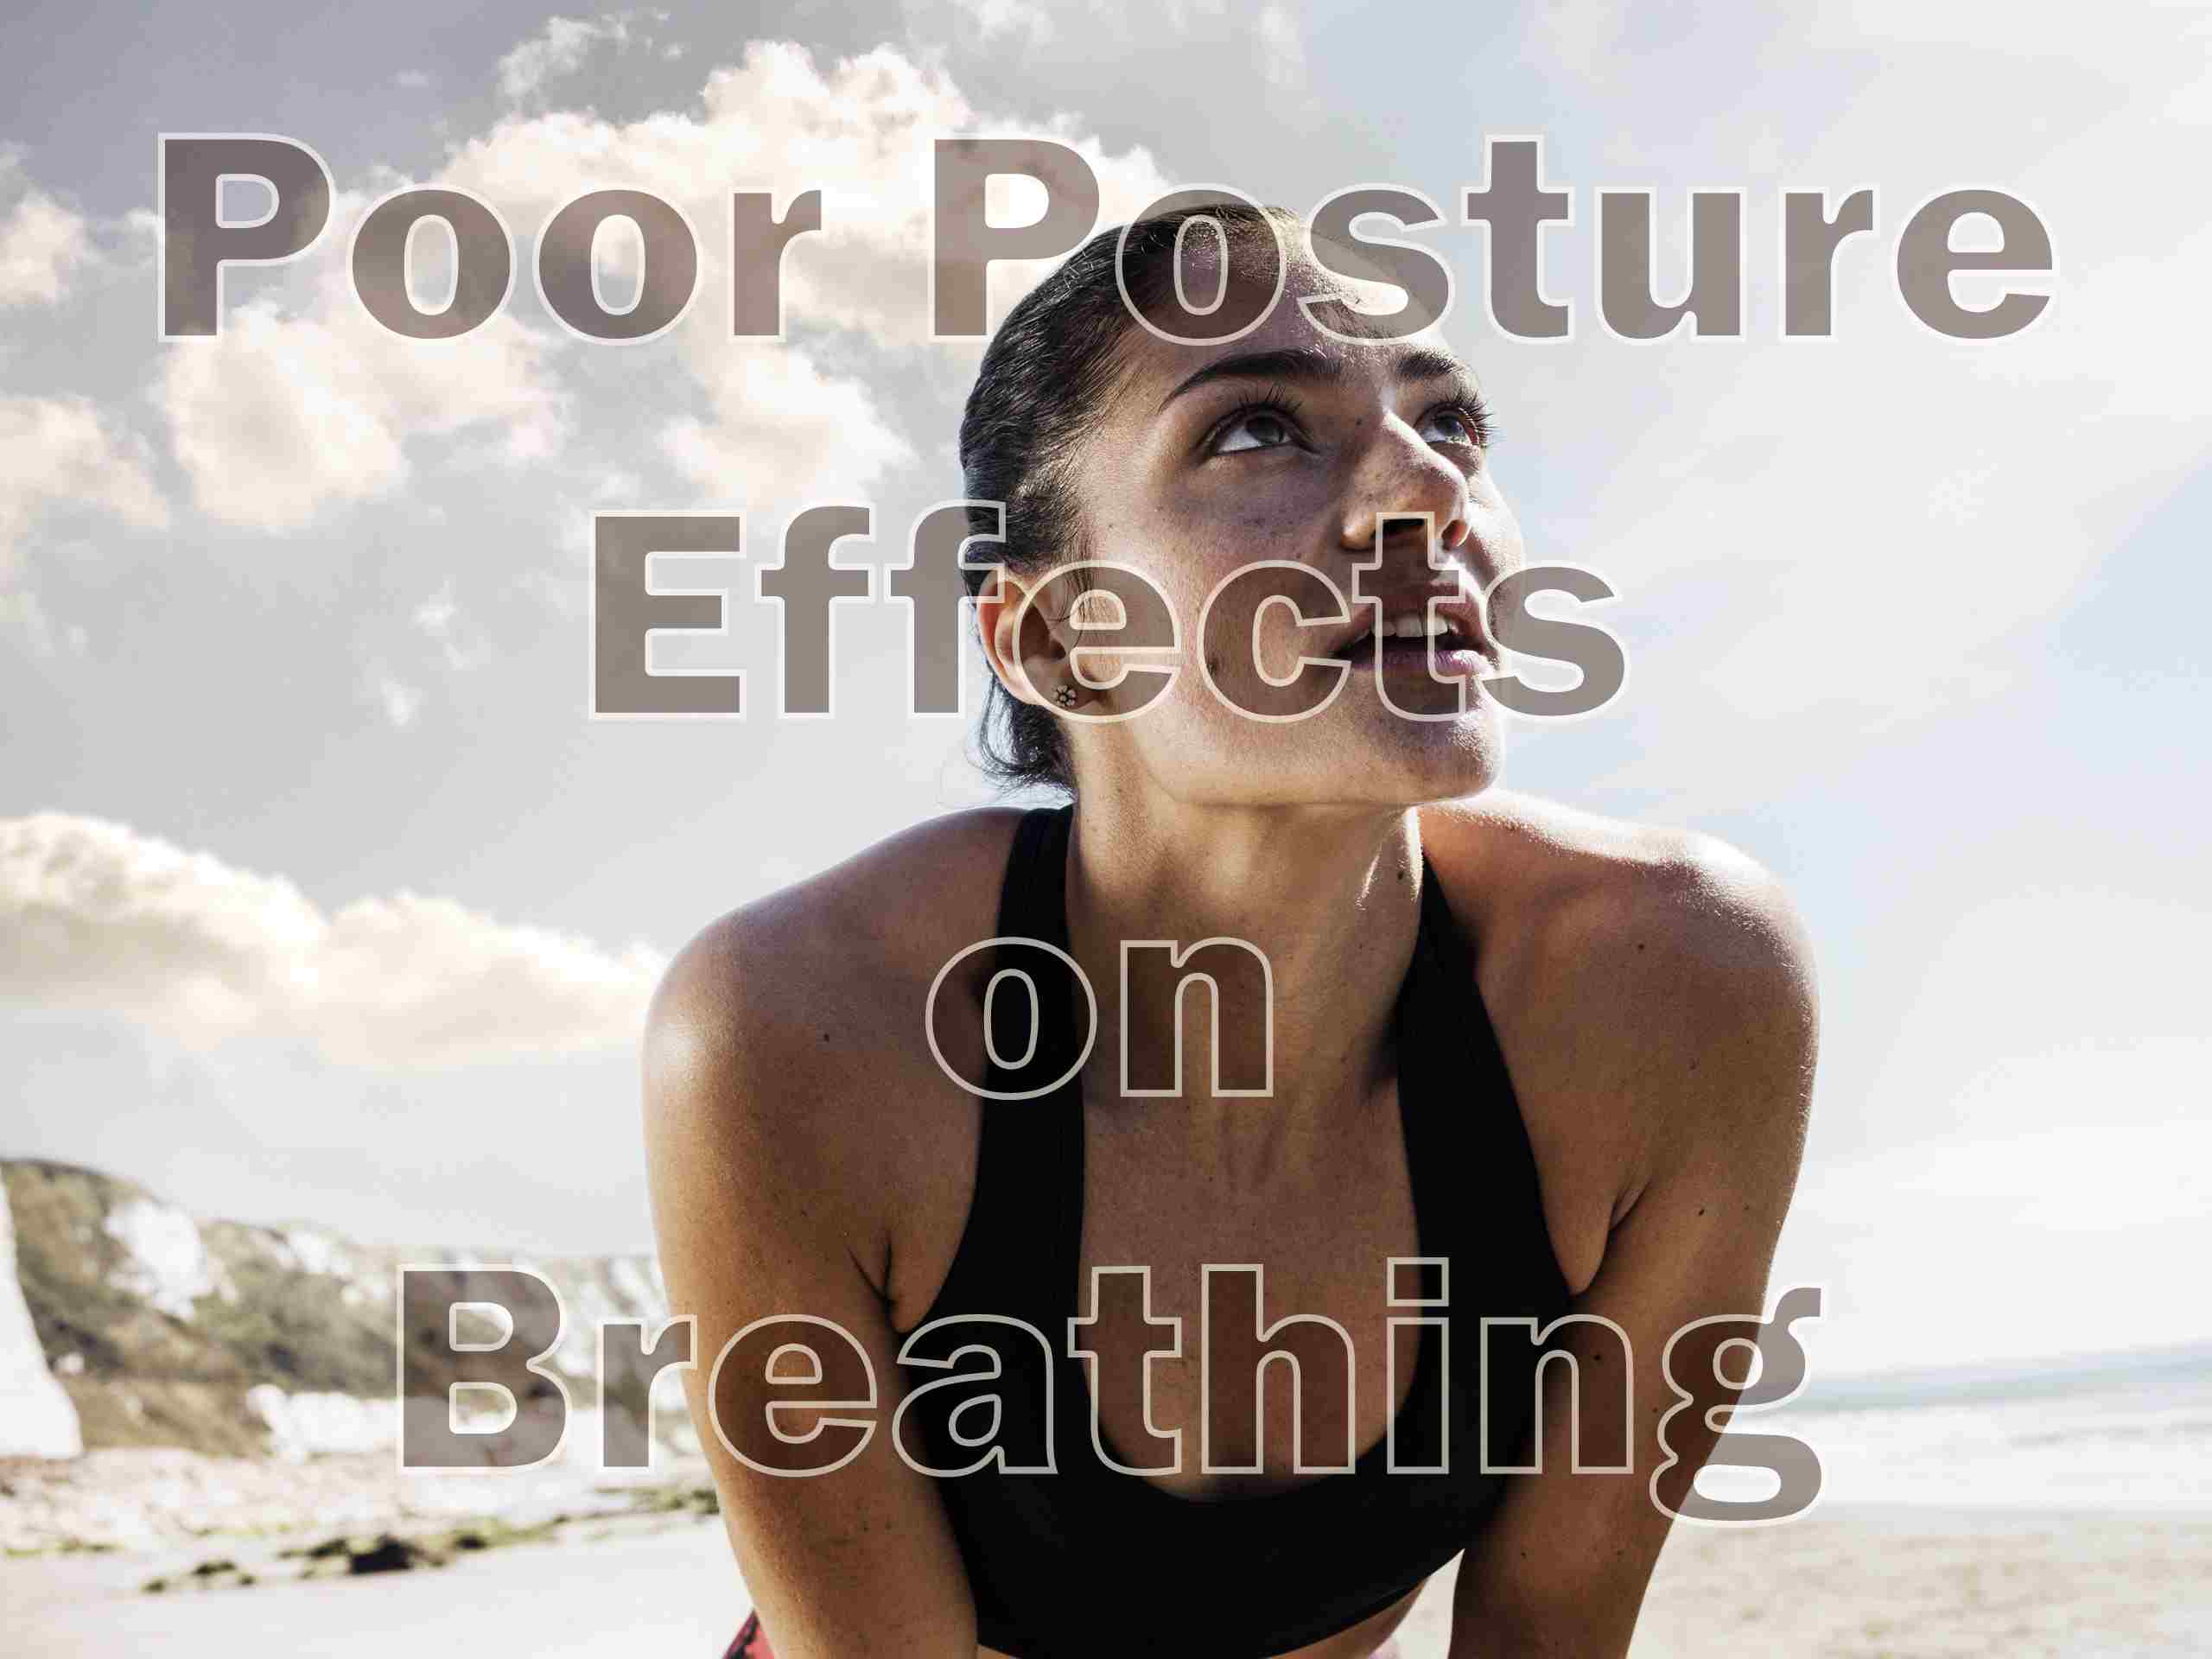 poor posture effects on breathing